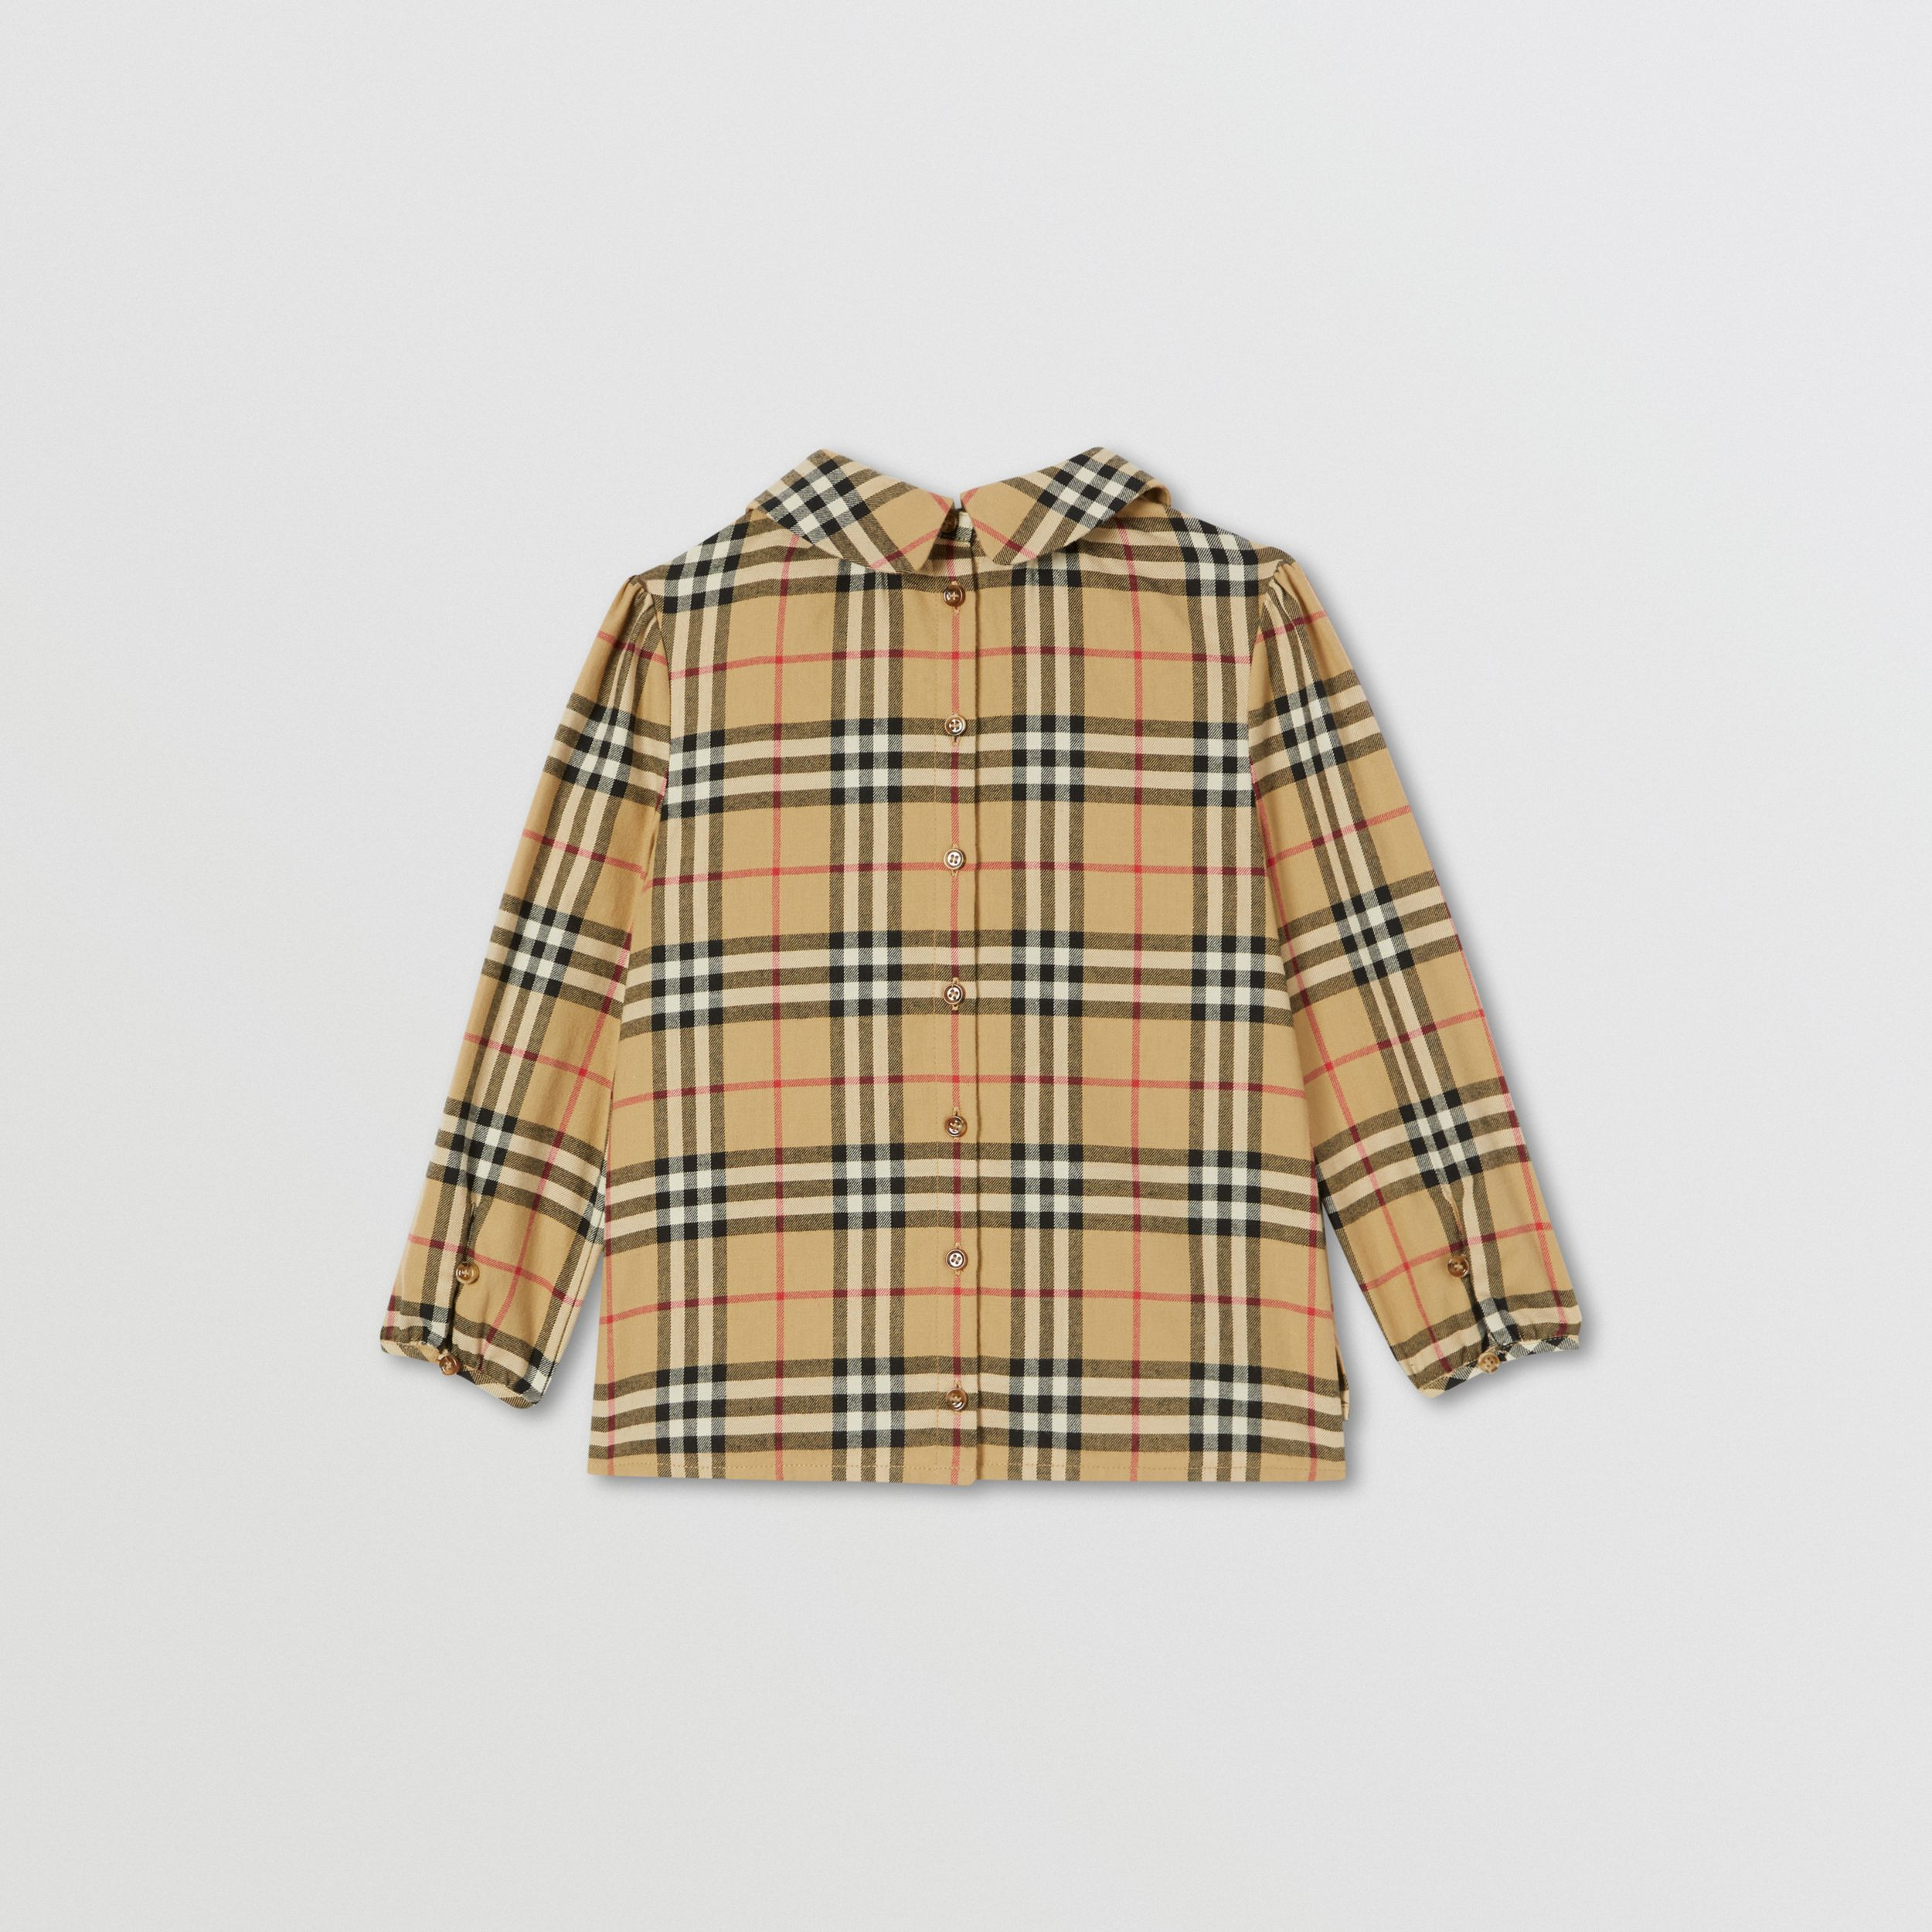 Peter Pan Collar Vintage Check Cotton Blouse | Burberry Hong Kong S.A.R. - 4